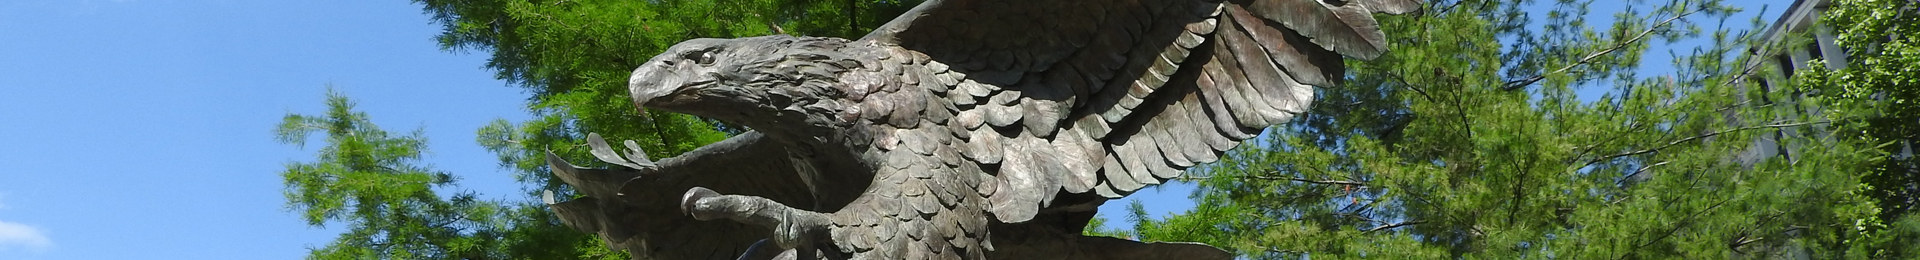 Photograph: Statue of eagle outside Washburn Law building.